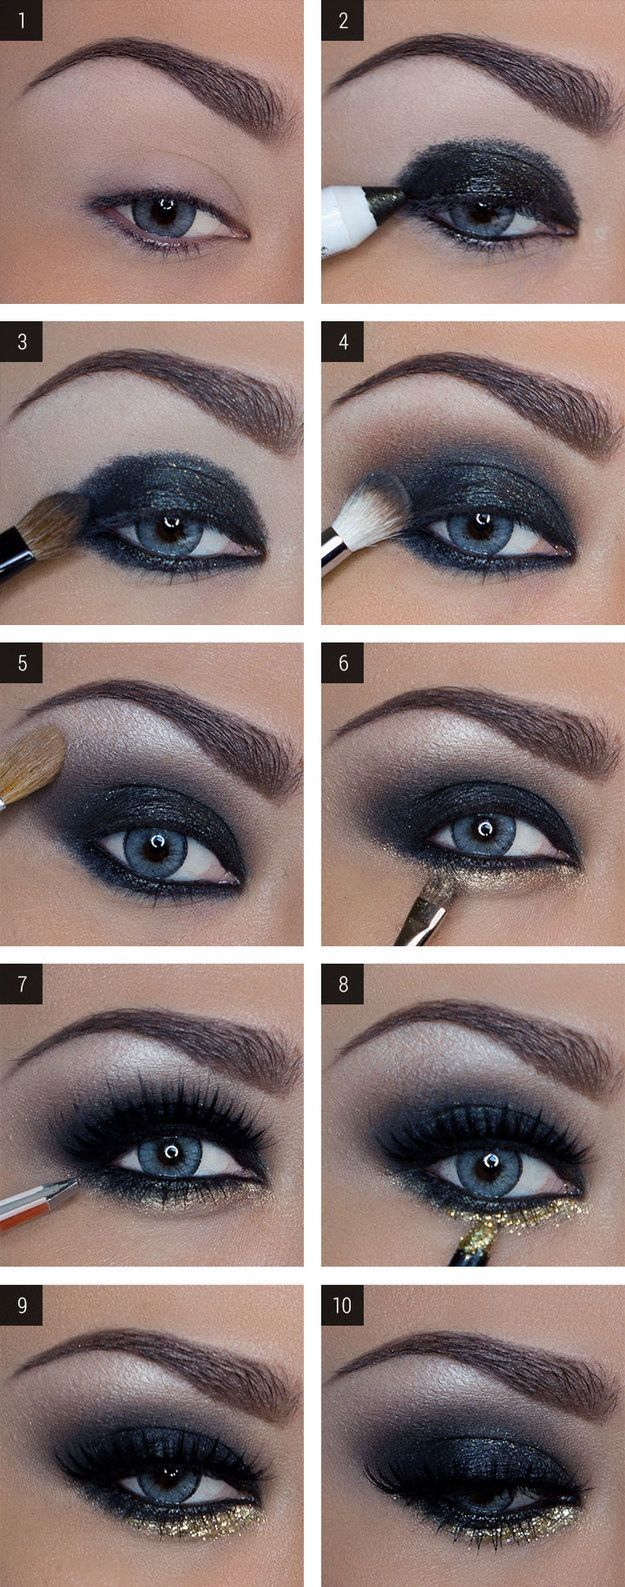 How to Do Dramatic Smokey Eyes   Makeup for Blue Eye by Makeup Tutorials at http://www.makeuptutorials.com/makeup-tutorial-12-makeup-for-blue-eyes